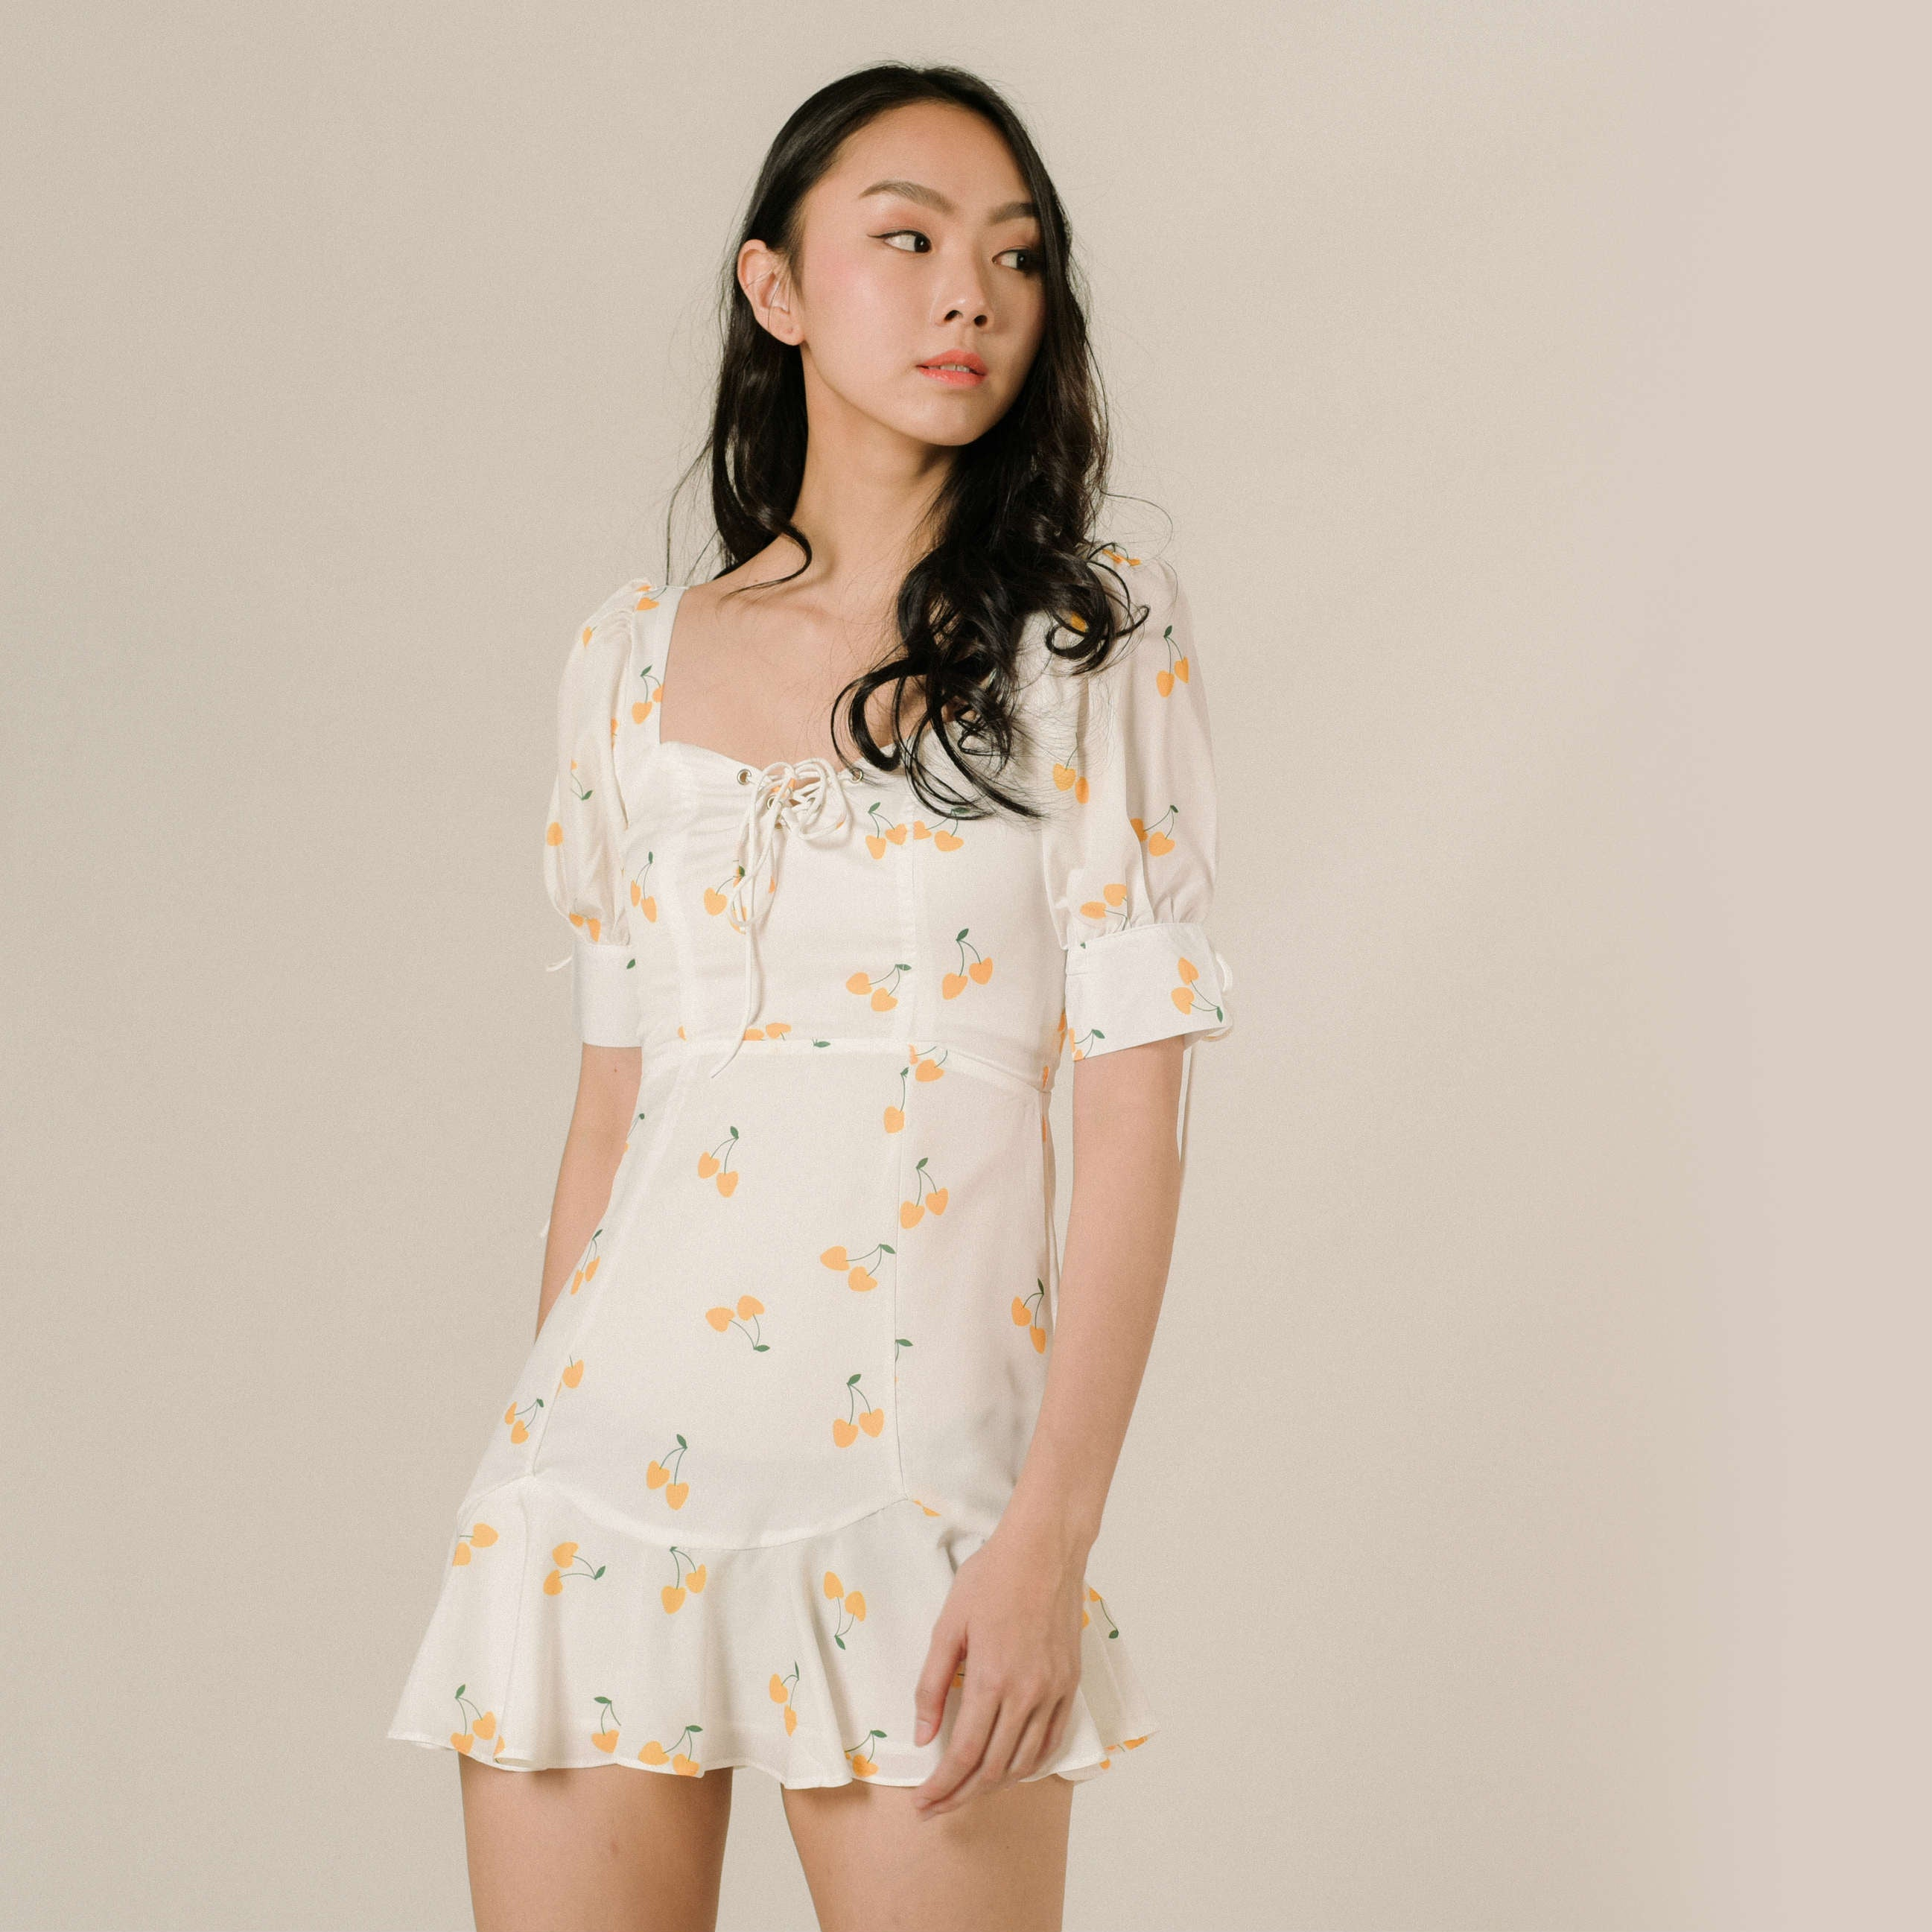 Rachel Tie Mini Dress